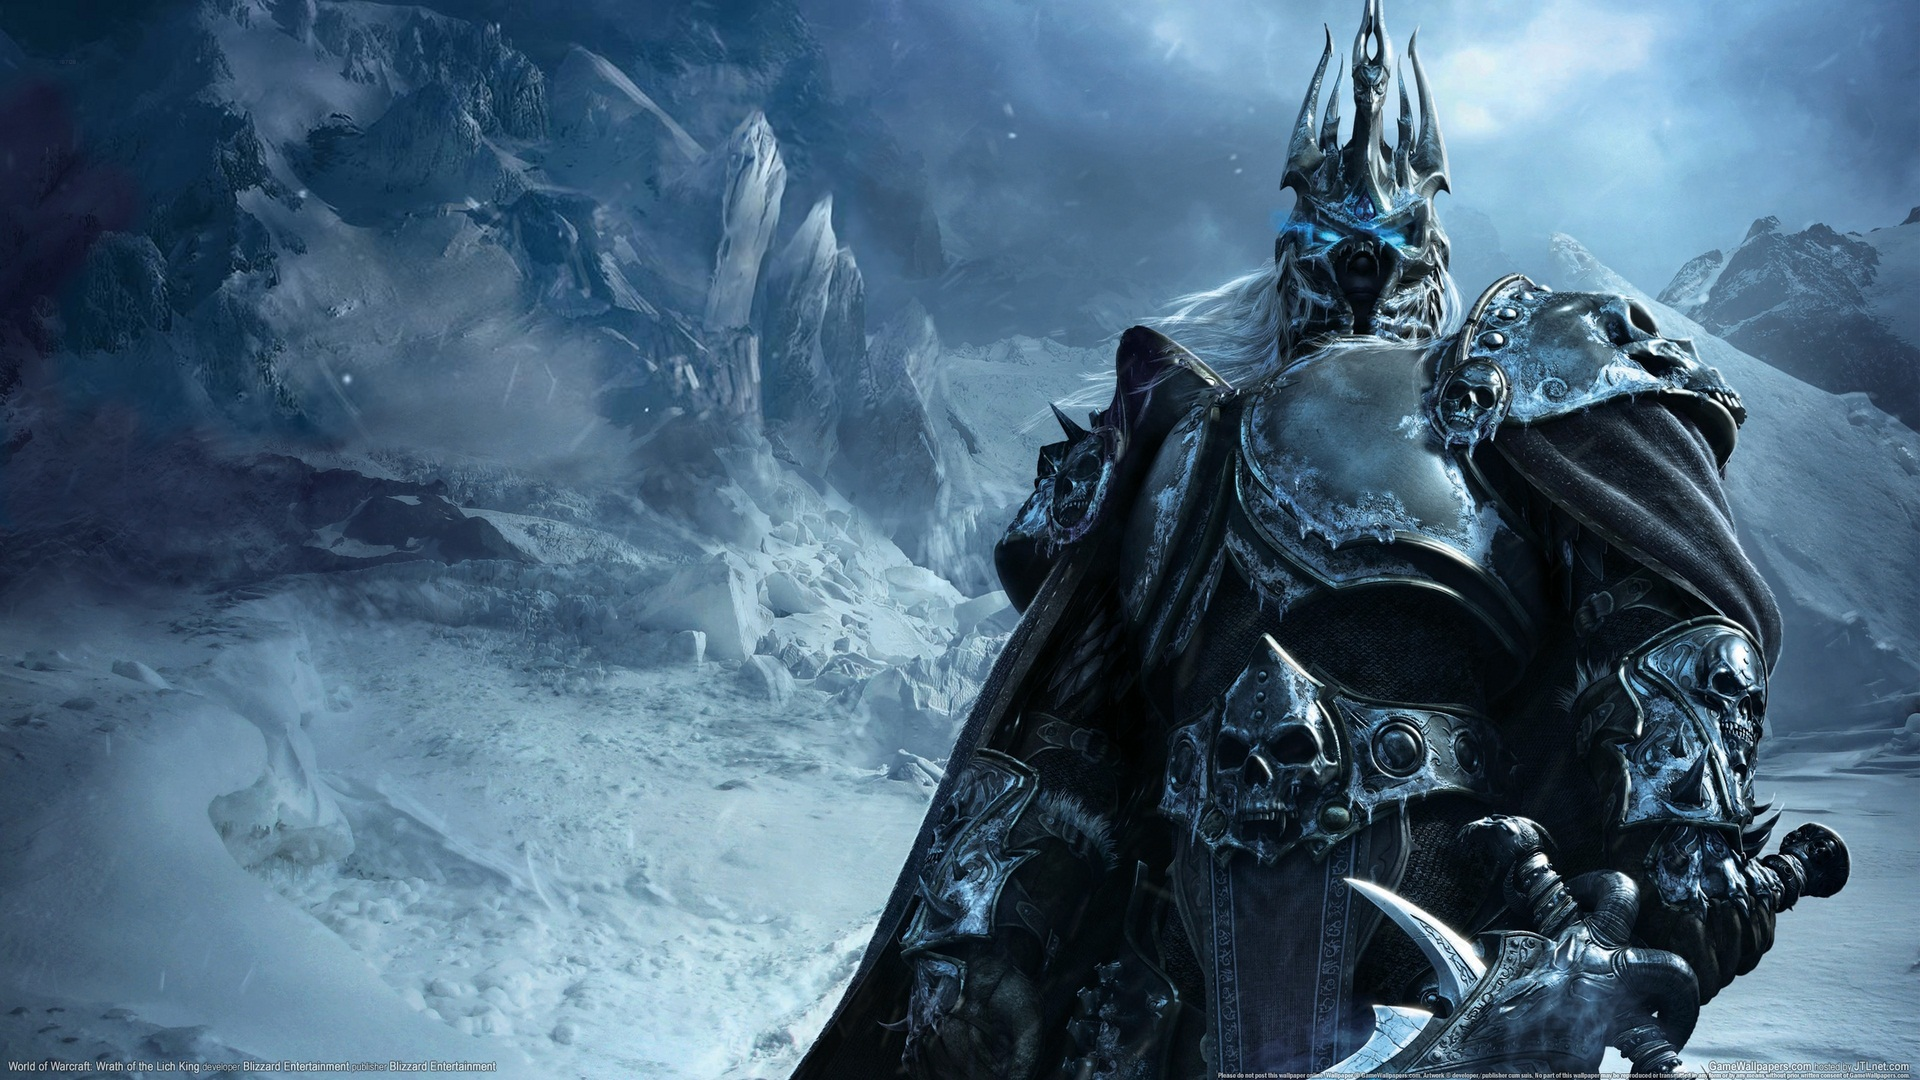 Free Download World Of Warcraft Wrath Of The Lich King